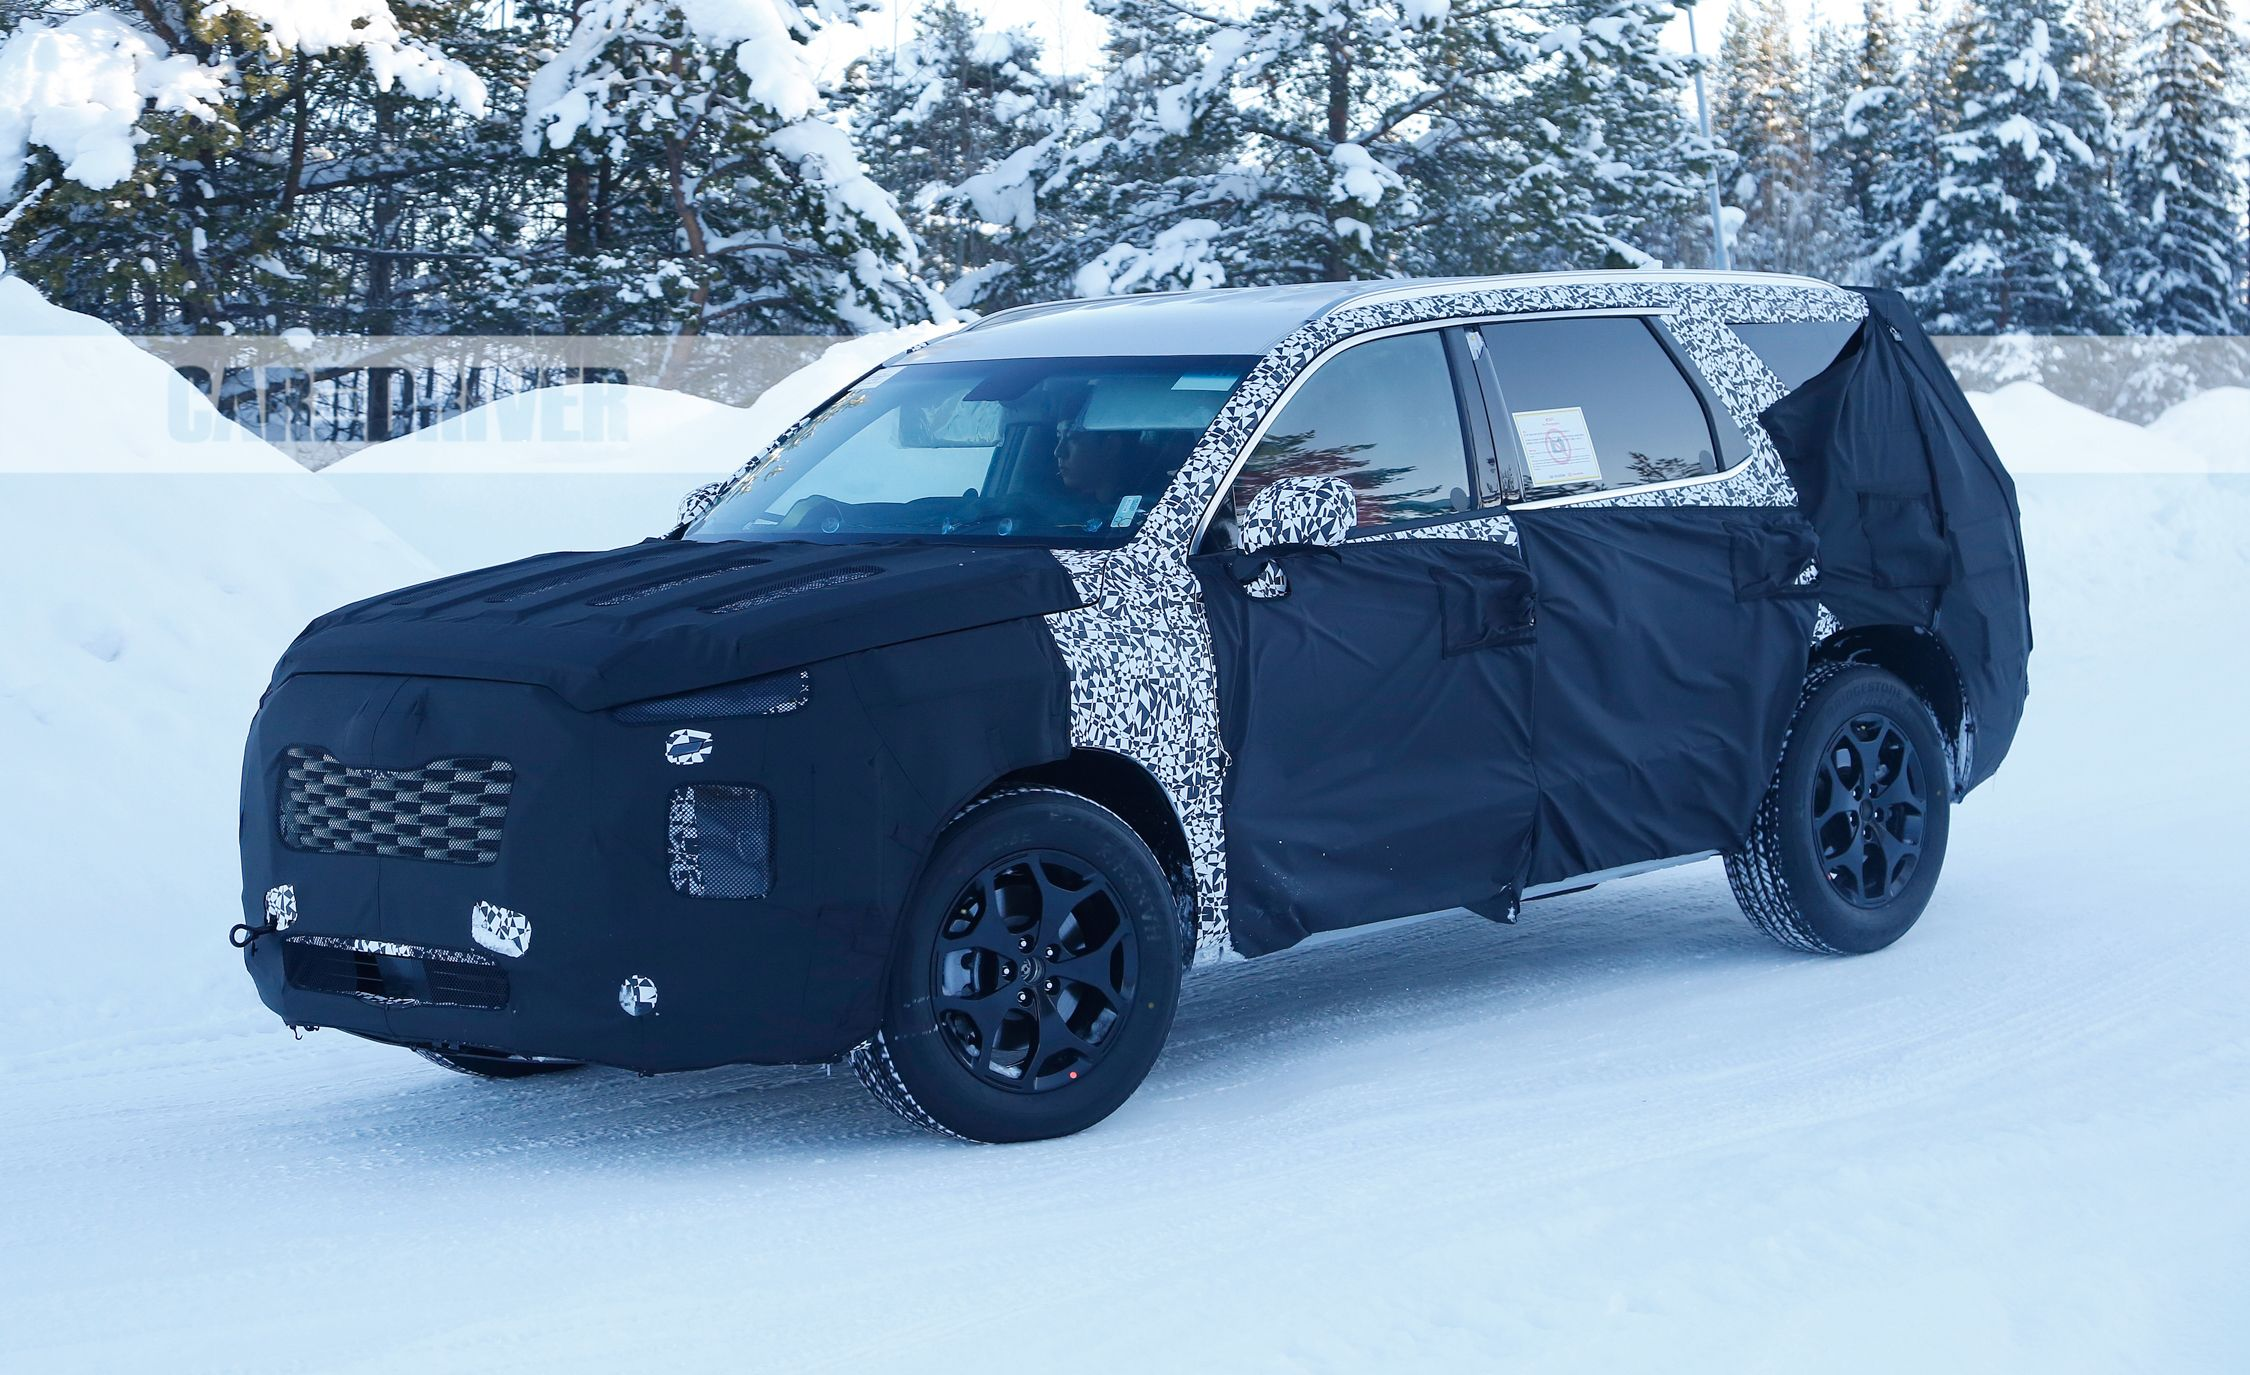 Car And Driver Best Suv: Full-Size Hyundai SUV Spied Ahead Of 2019 Debut